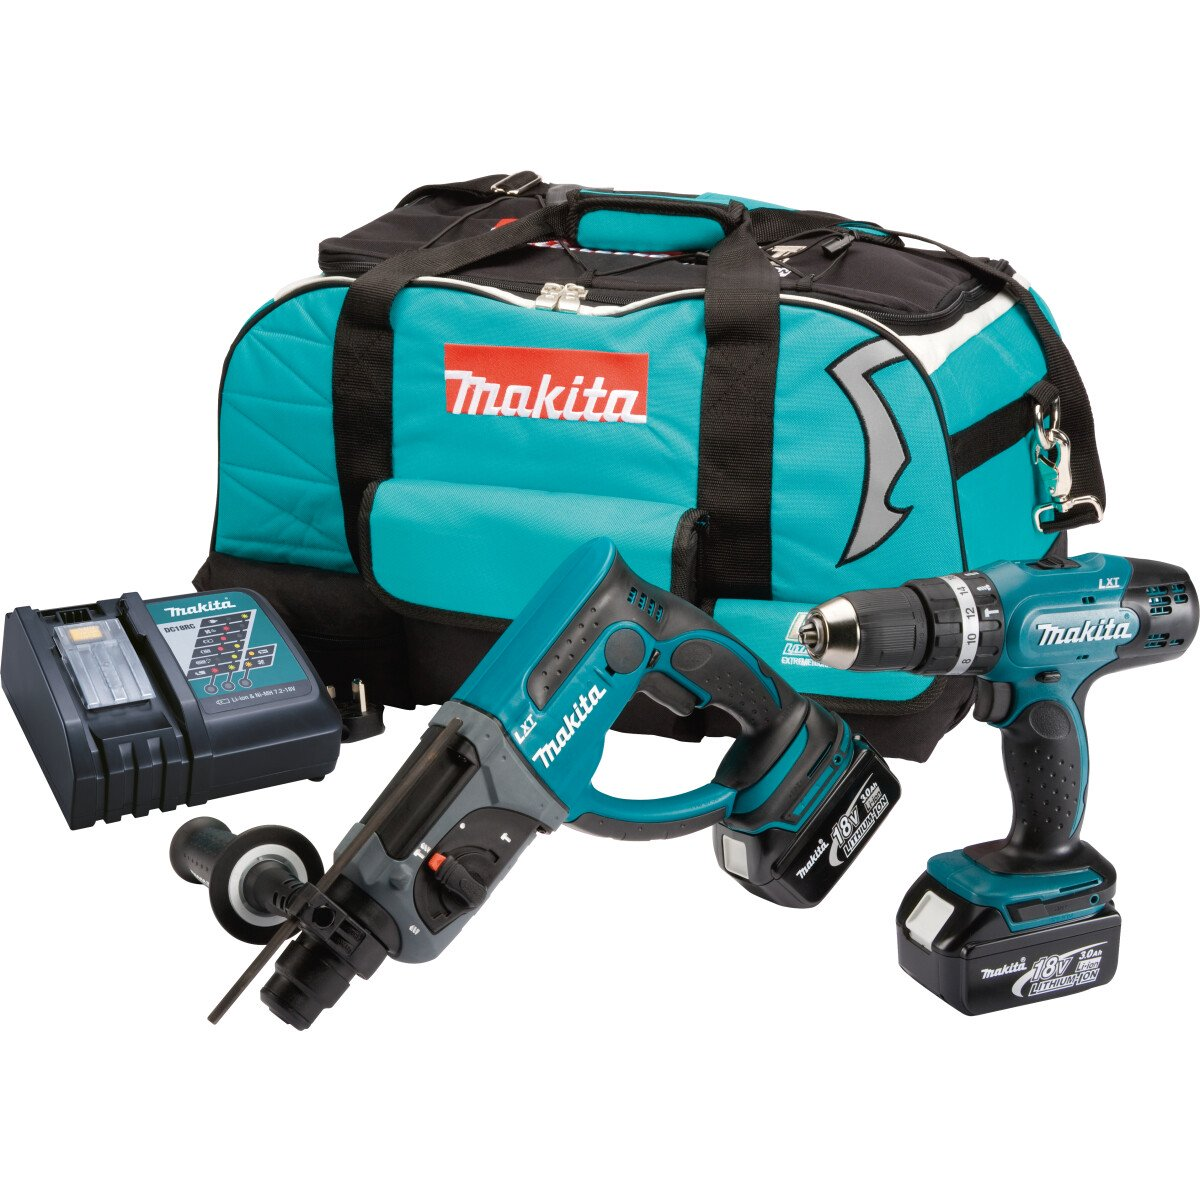 Makita DLX2025T 18V Twinkit SDS Hammer Drill + Combi Drill with 2x 5.0Ah Batteries in LXT Toolbag